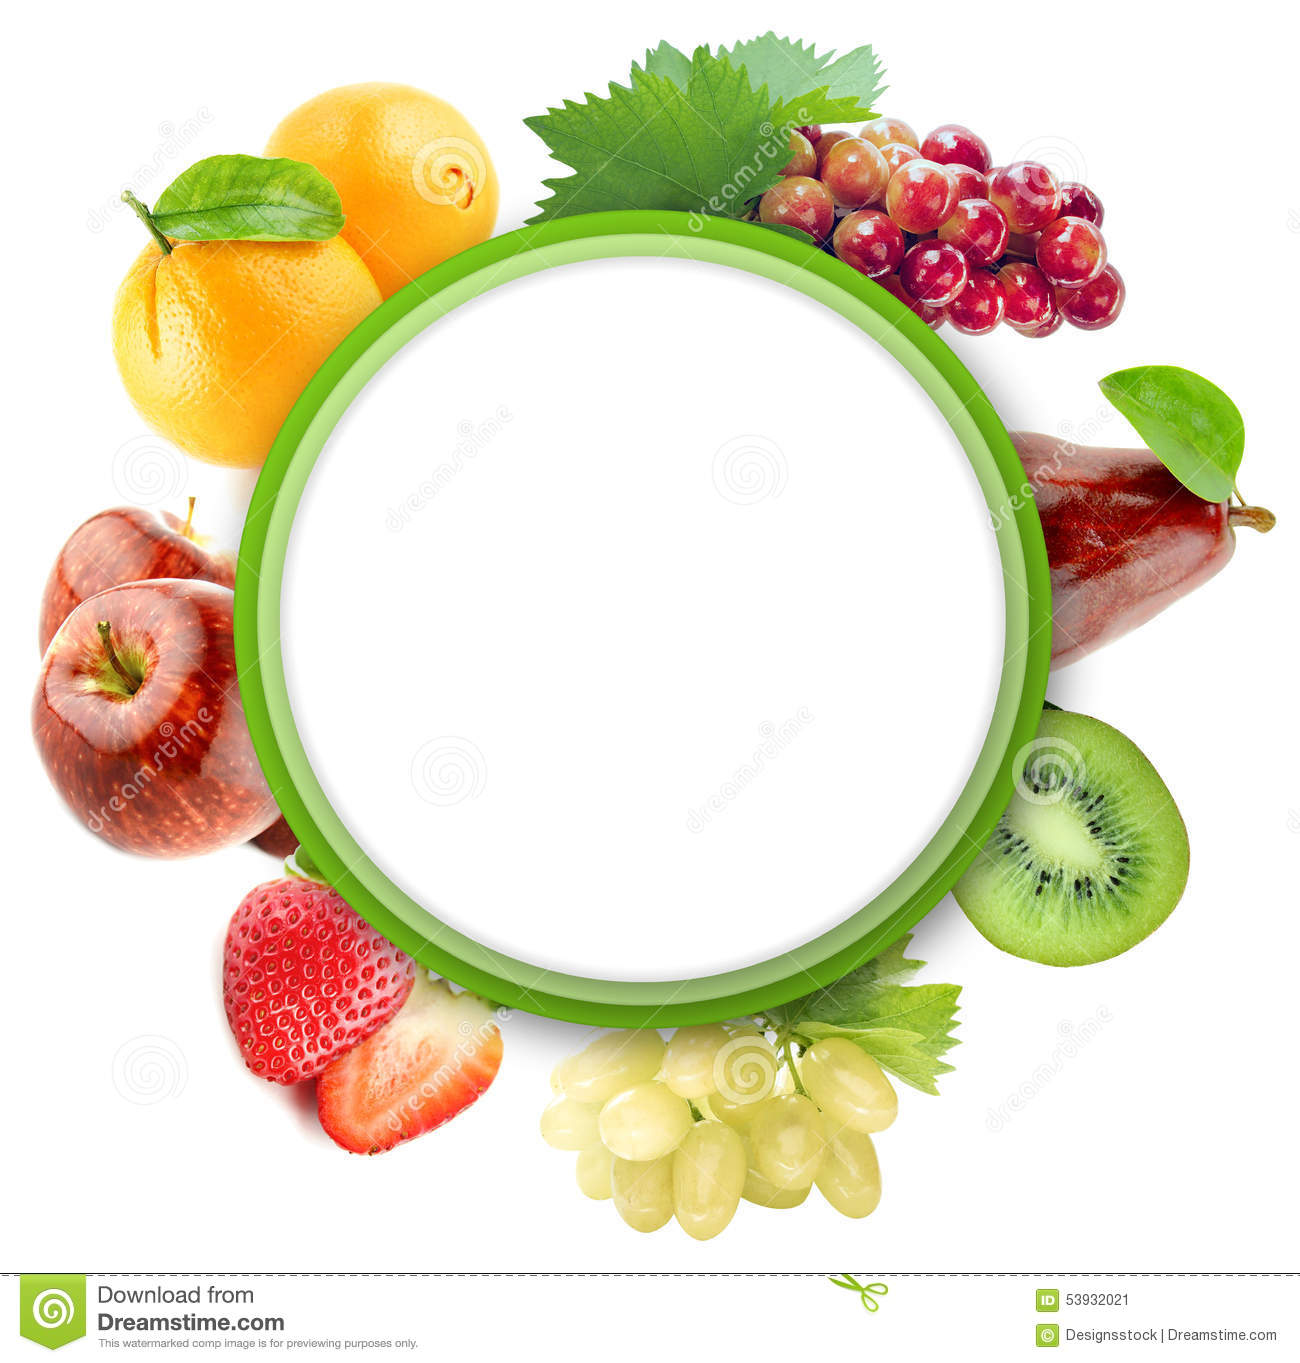 healthy fruits and vegetables to eat fruit that starts with c